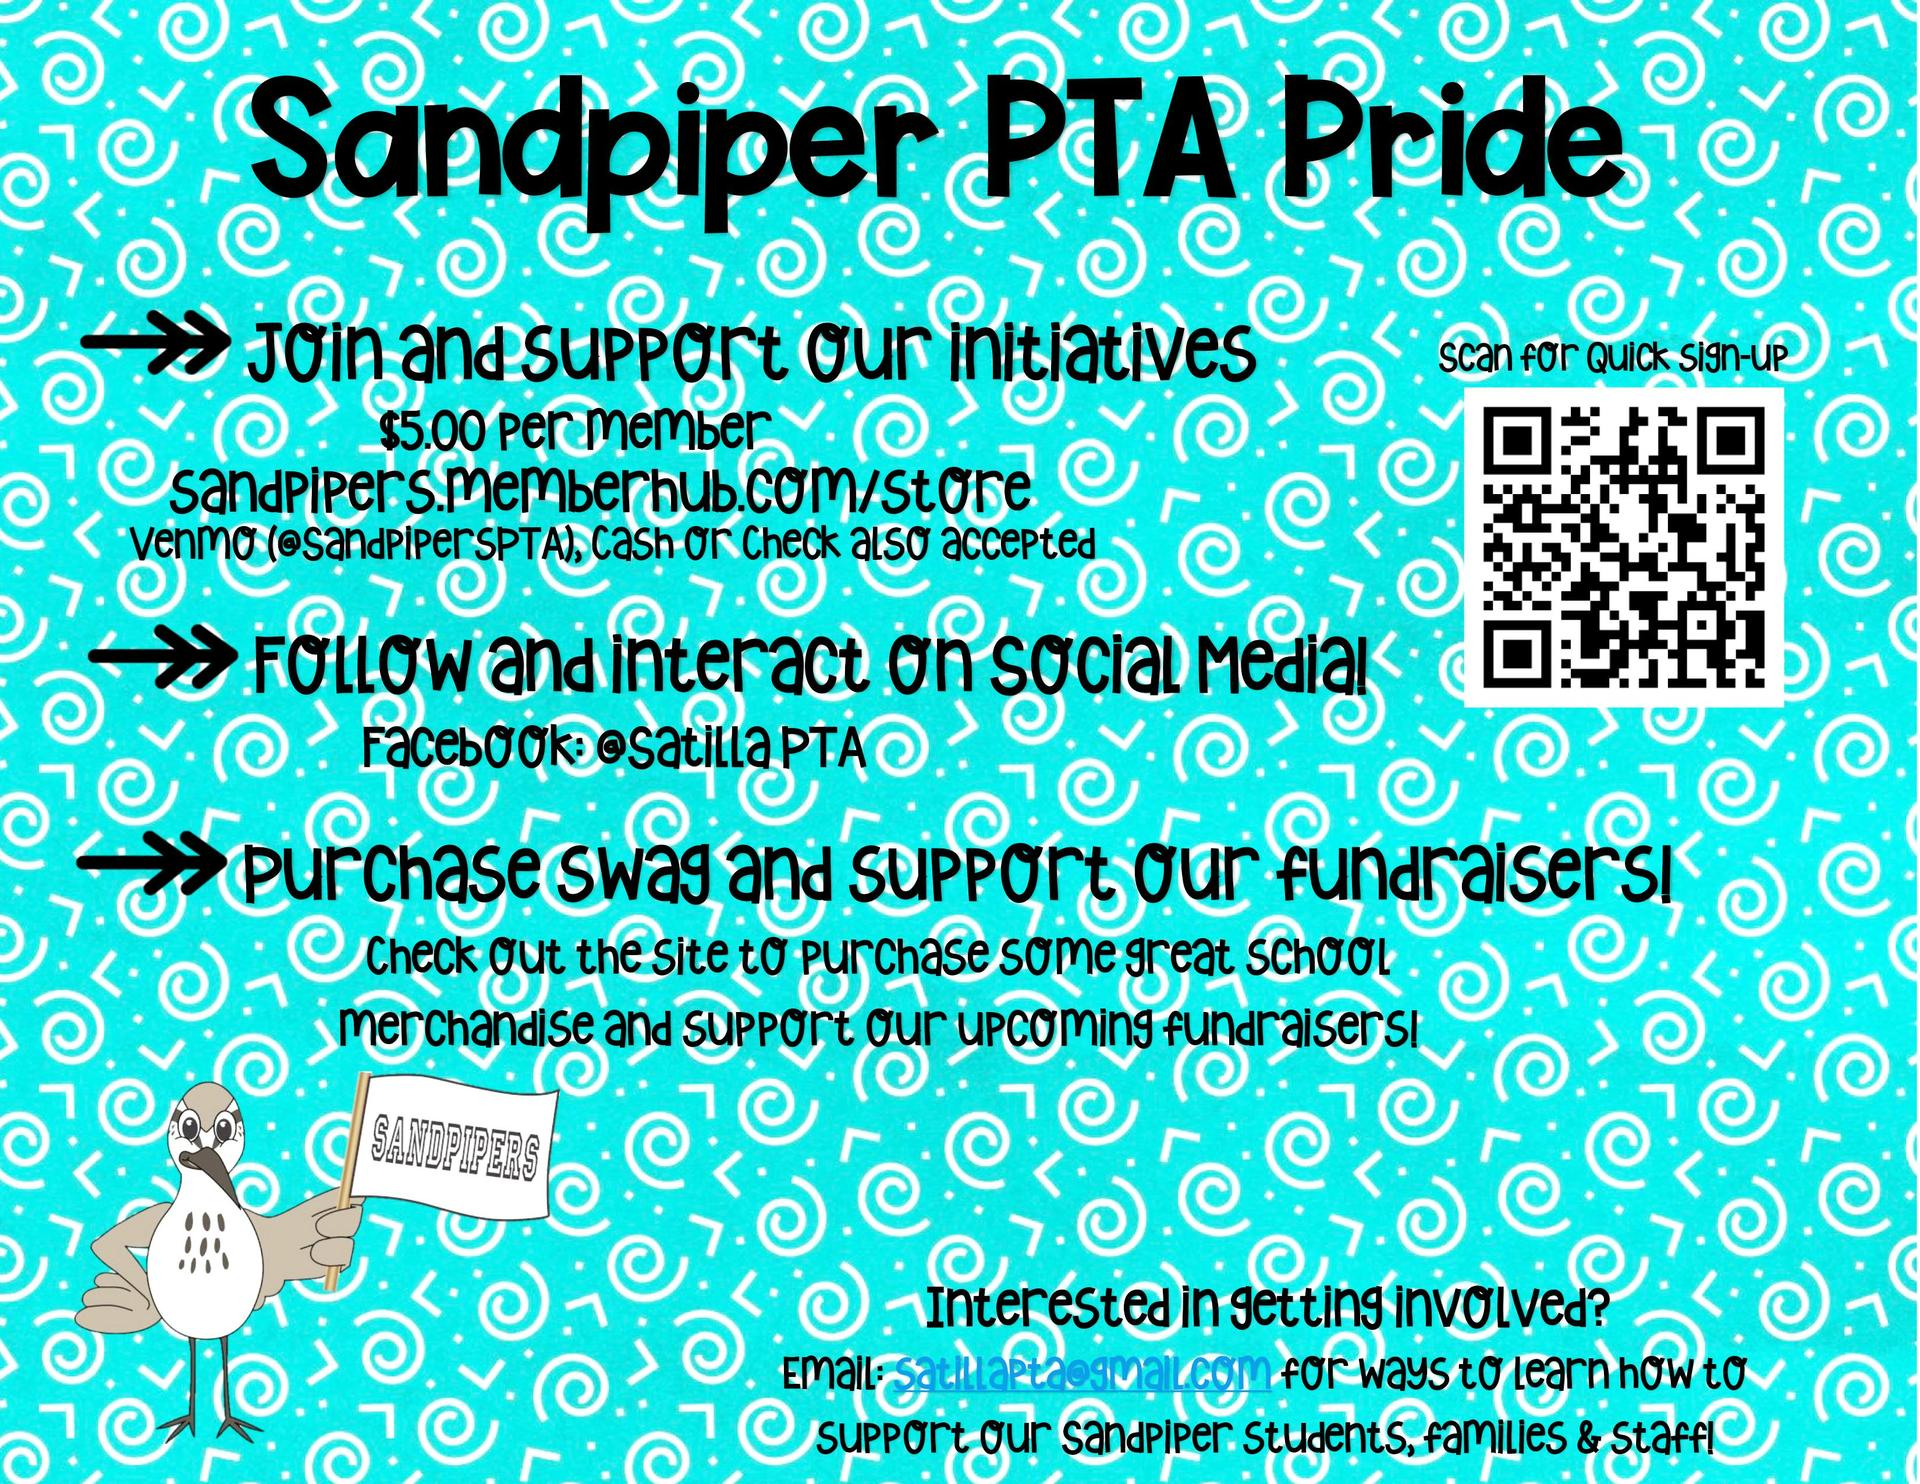 sandpiper pta pride information with blue background and black text